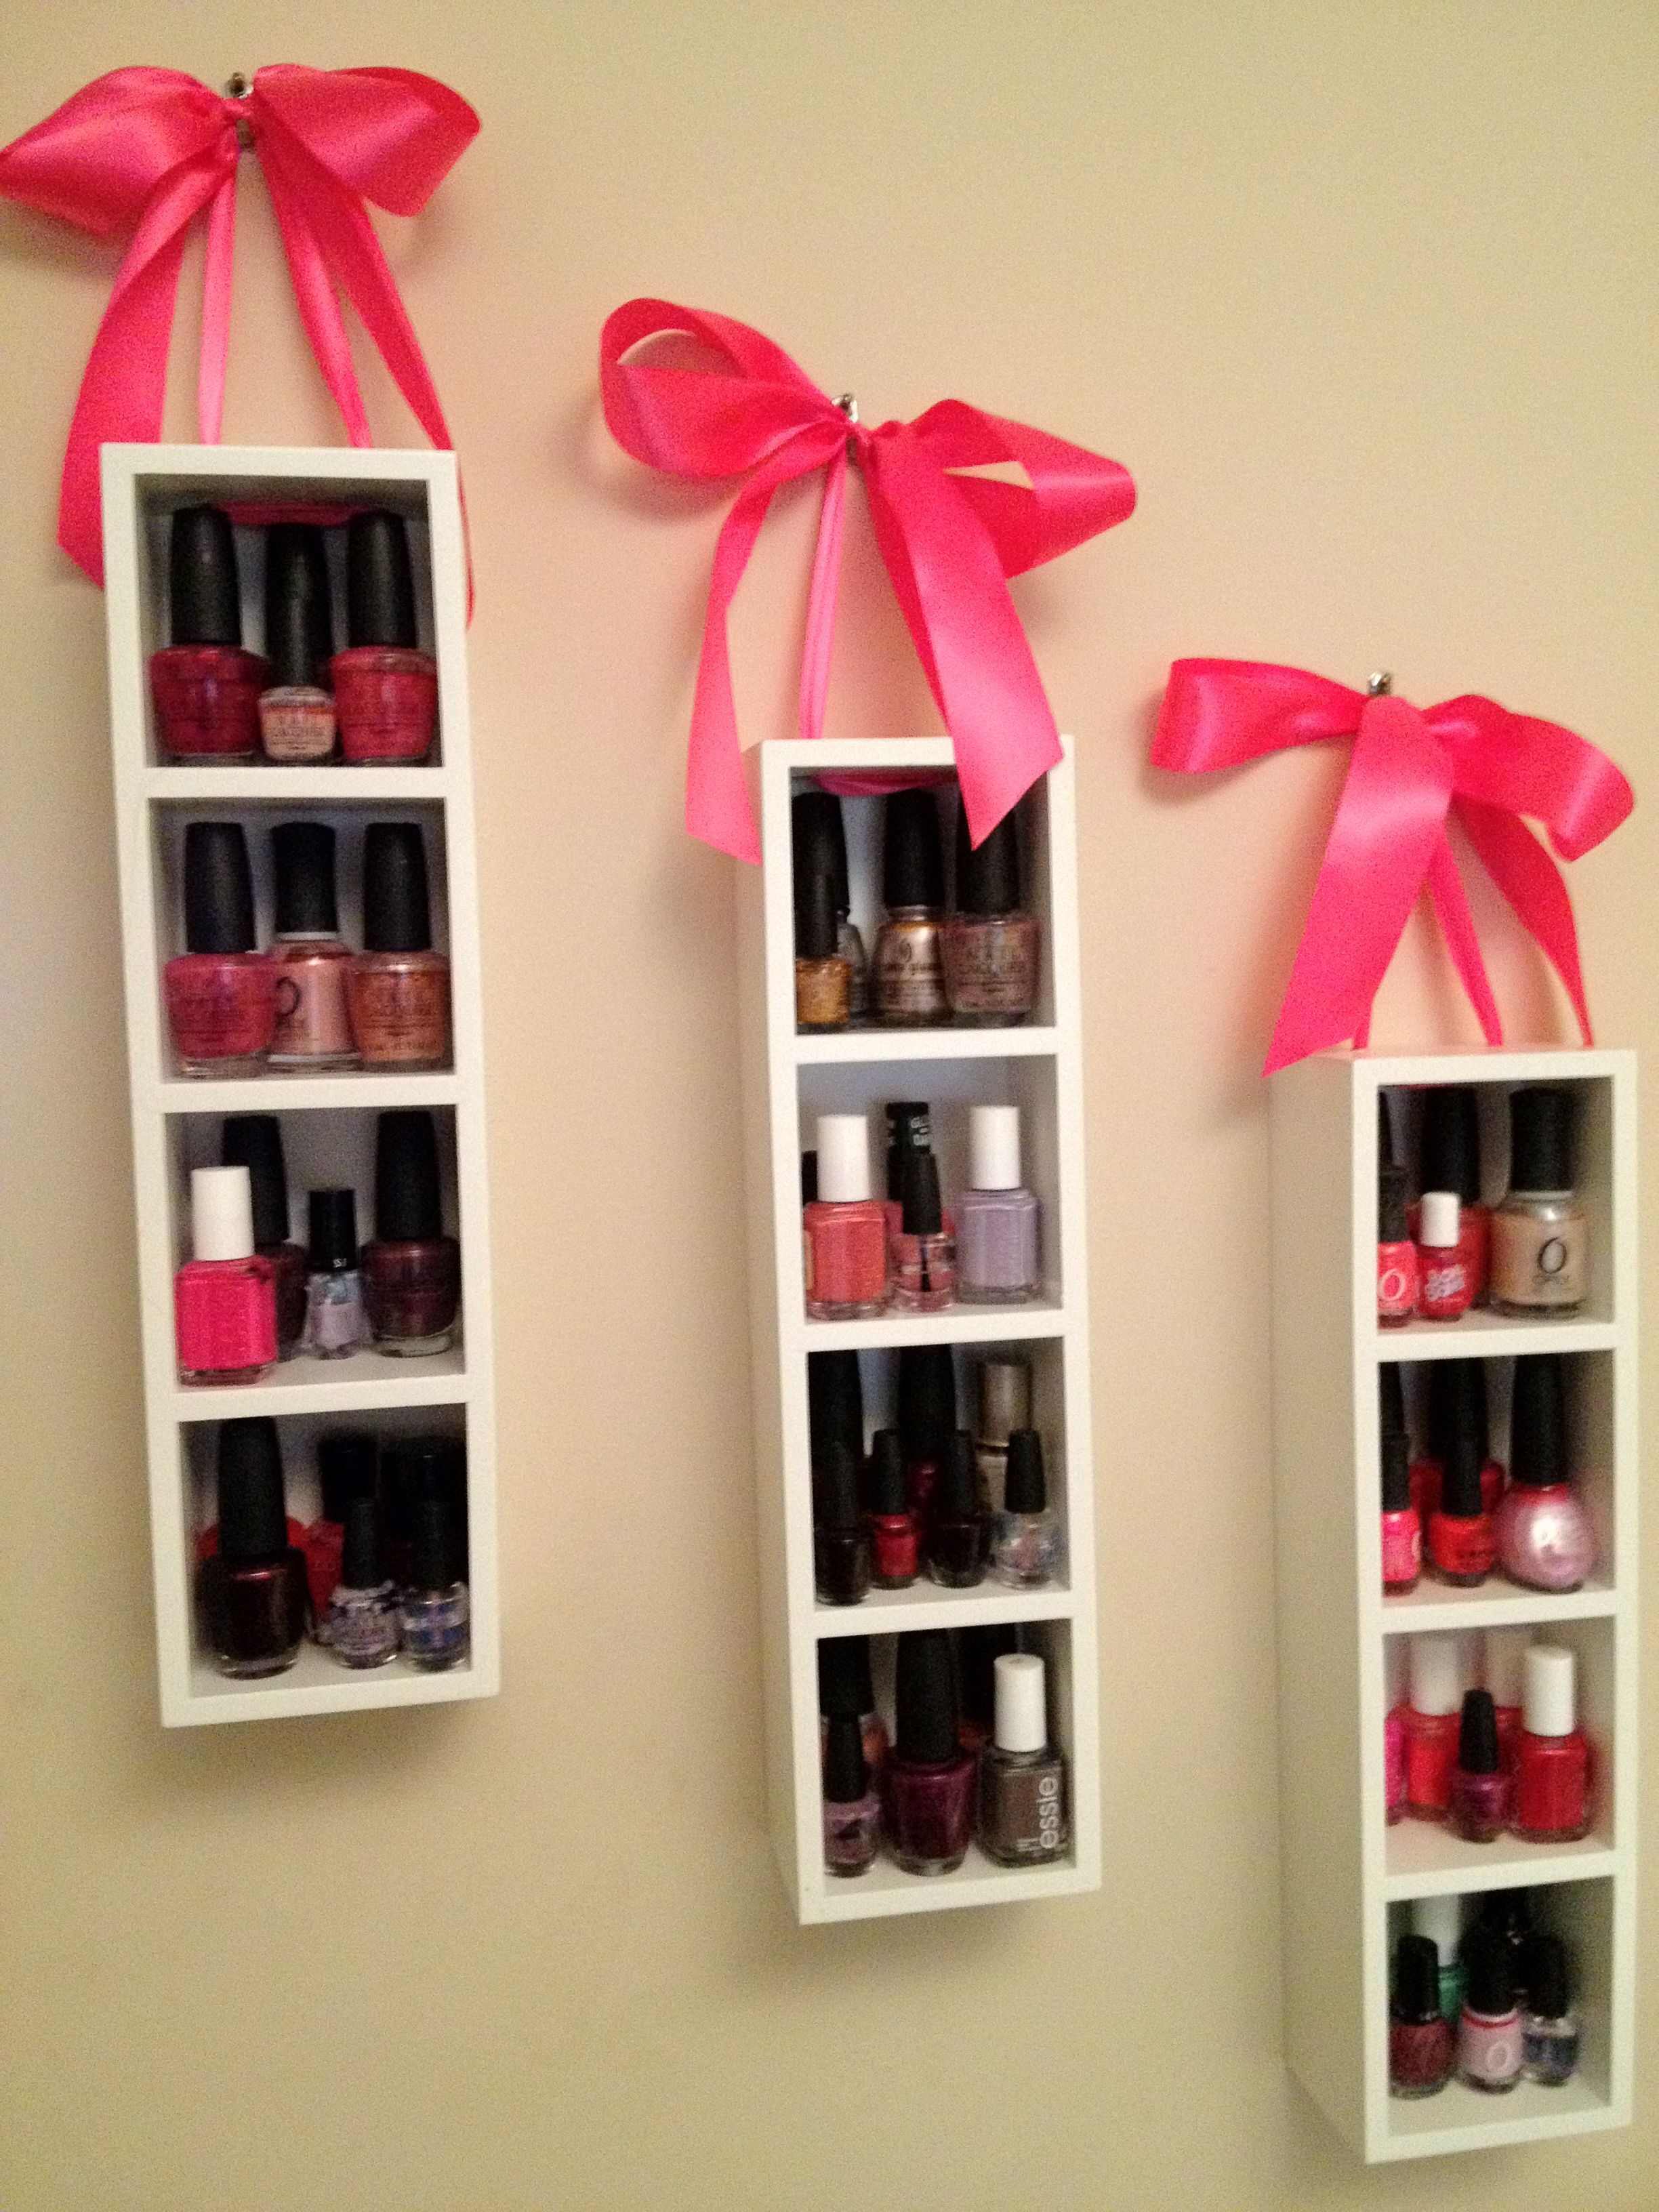 Cute Nail Polish Storage I Found These Wooden Shelves At Joann S